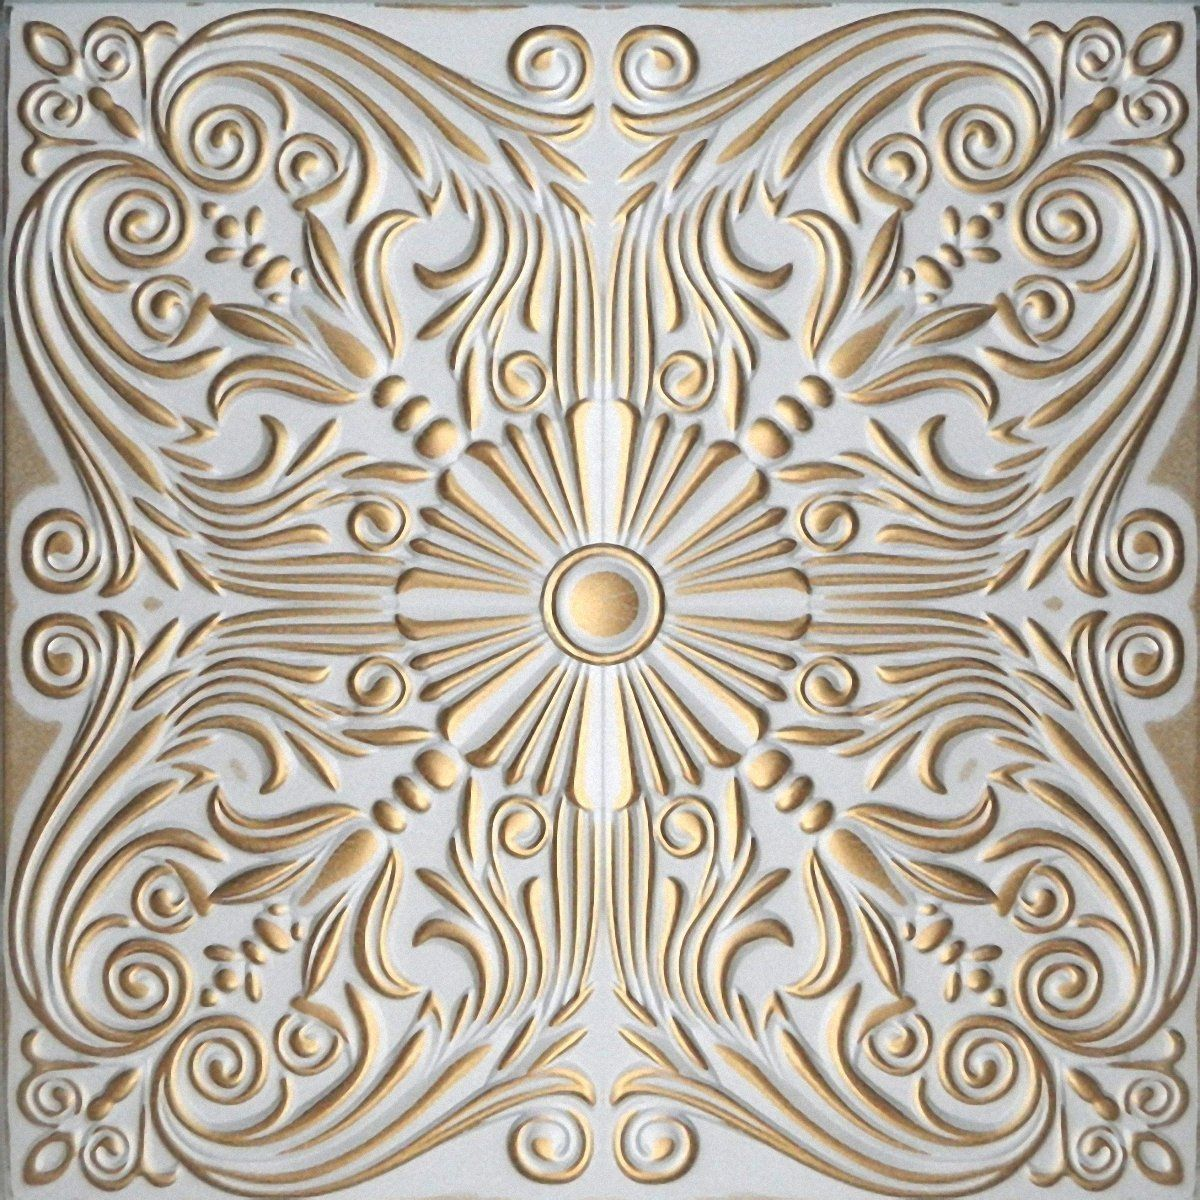 Hand painted polystyrene foam ceiling tiles retro 76 white gold hand painted polystyrene foam ceiling tiles retro 76 white gold pack 40 pcs dailygadgetfo Choice Image